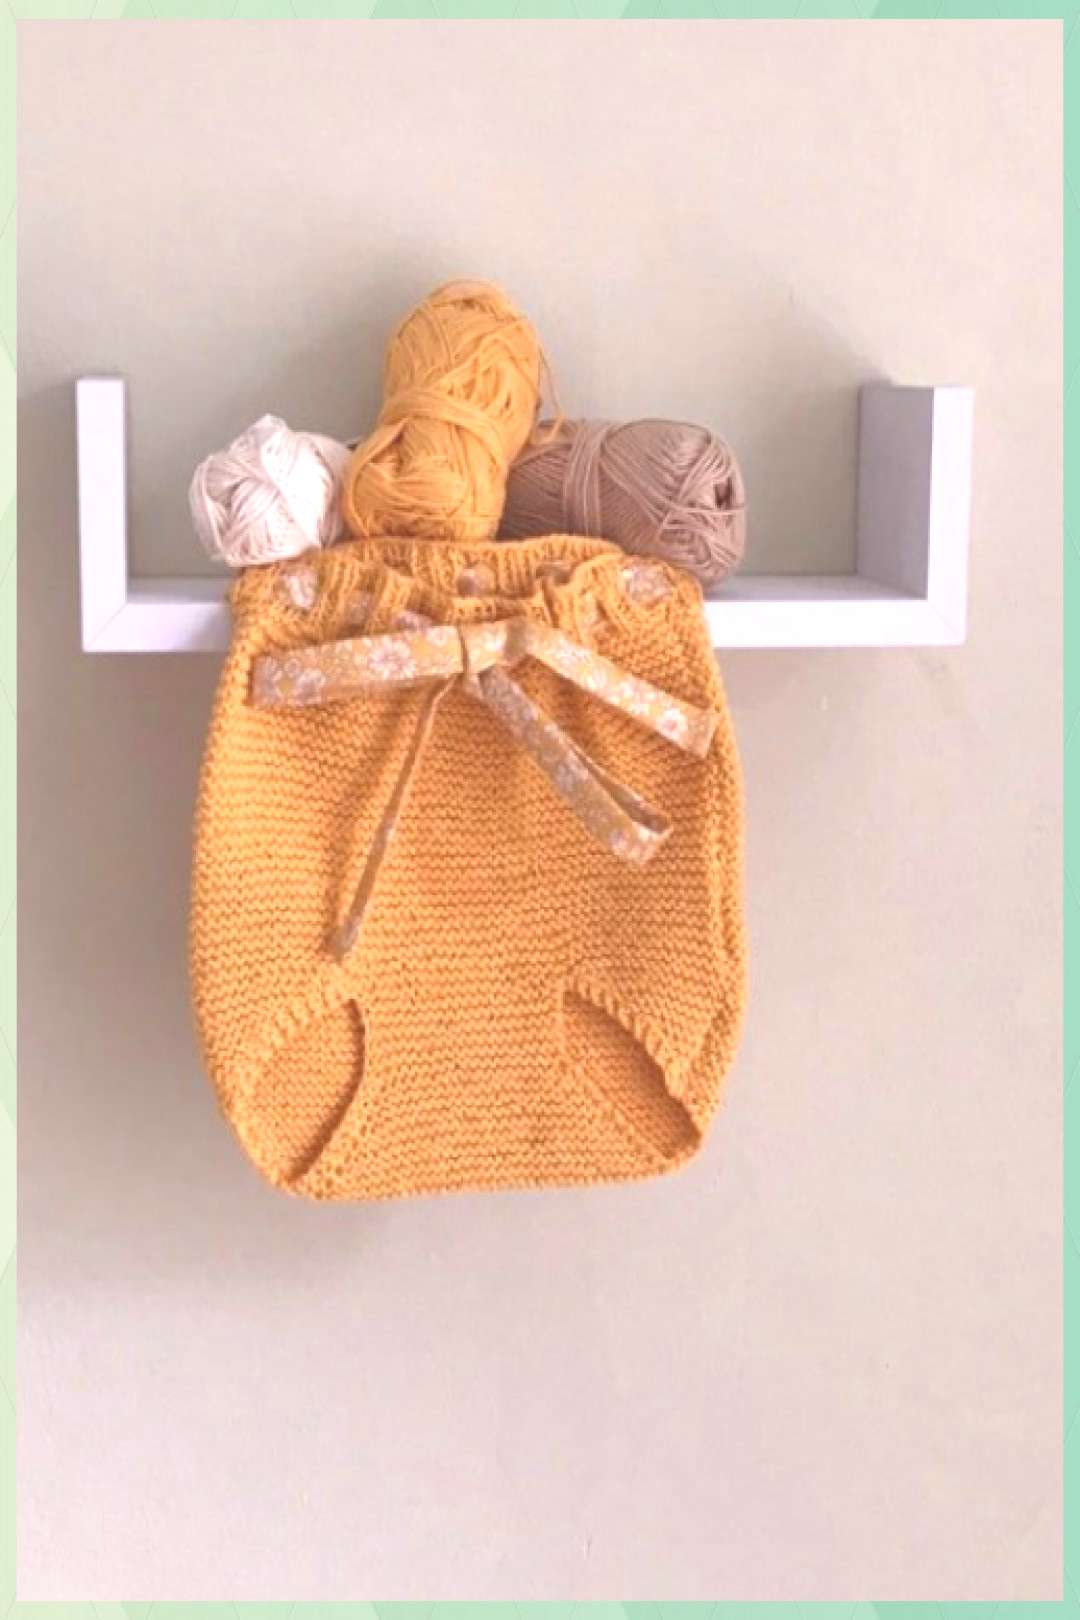 Cotton knit baby bloomers, cotton knit baby pants, knitted baby bloomers, knitted baby pants, liber